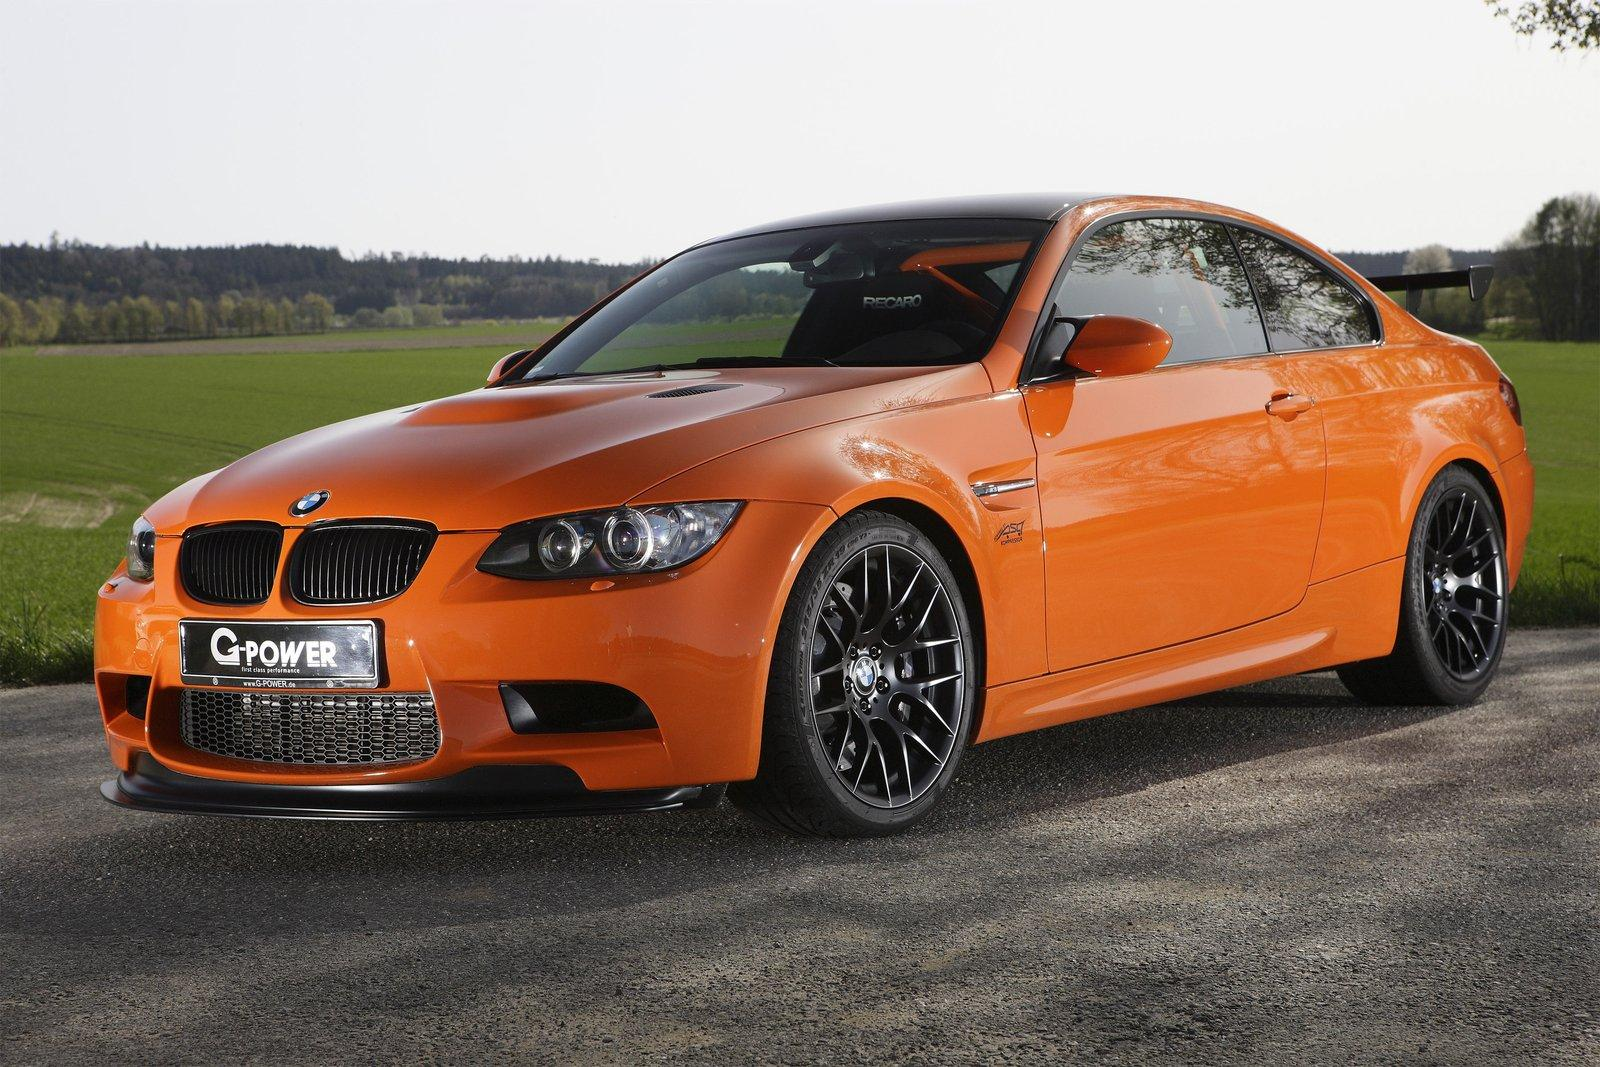 http://www.automobilesreview.com/img/g-power-bmw-m3-gts-sk-ii/g-power-bmw-m3-gts-sk-ii-02.jpg